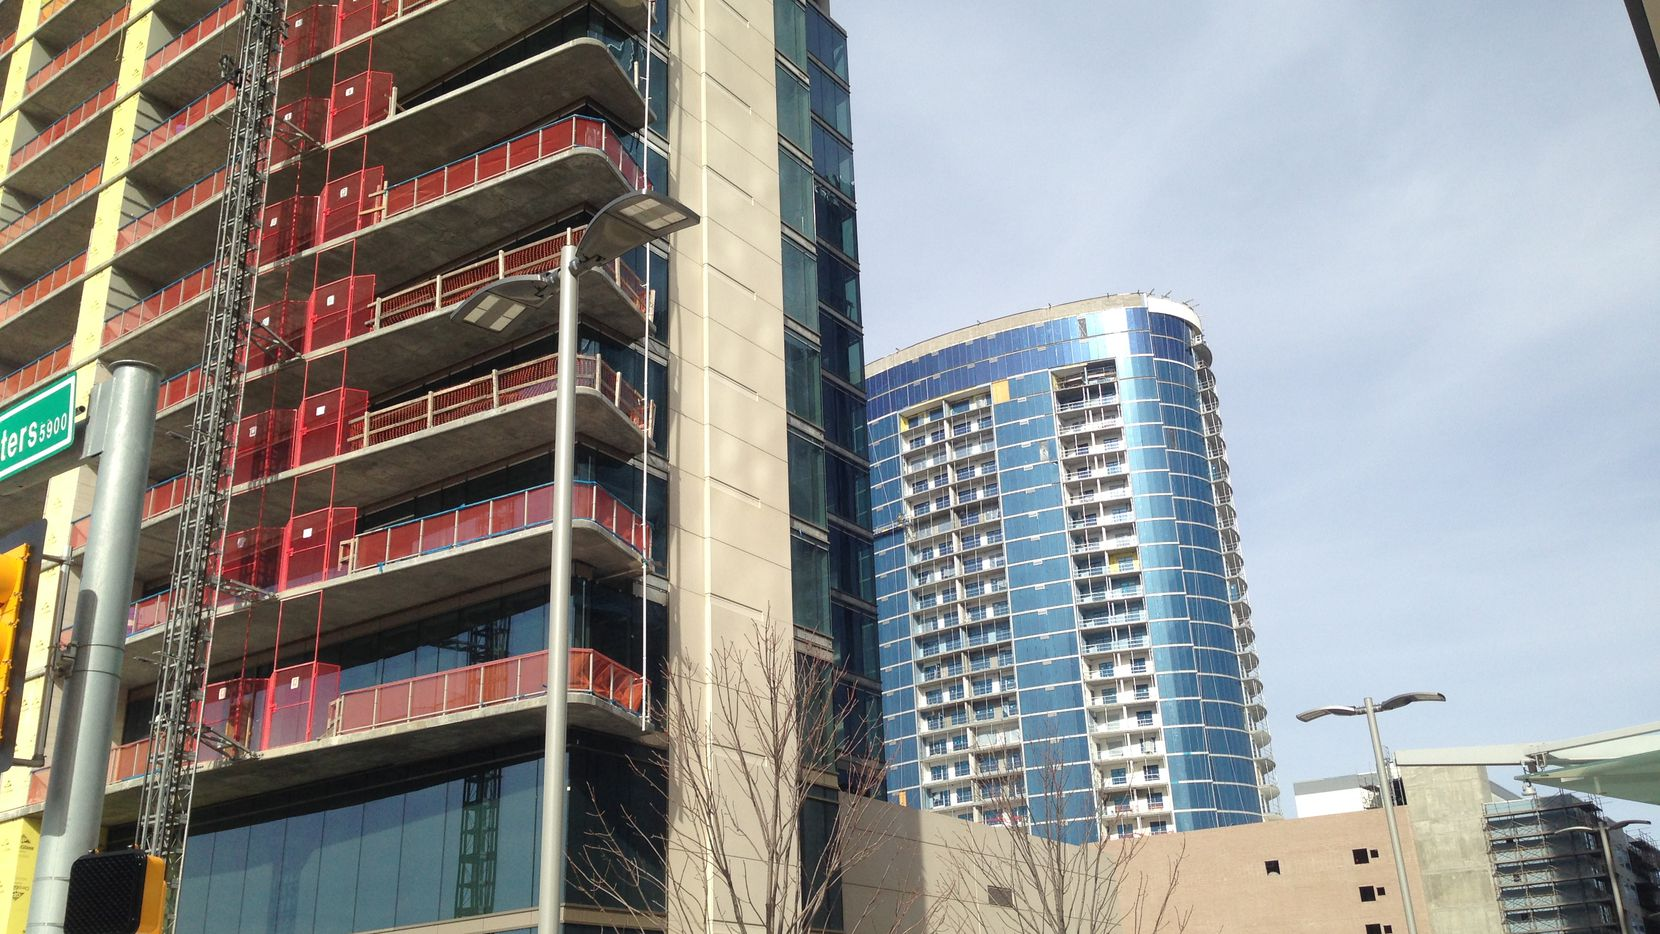 Construction on Legacy West's Windrose Tower condos, on the left, and the LVL 29 apartment high-rise is finishing up.